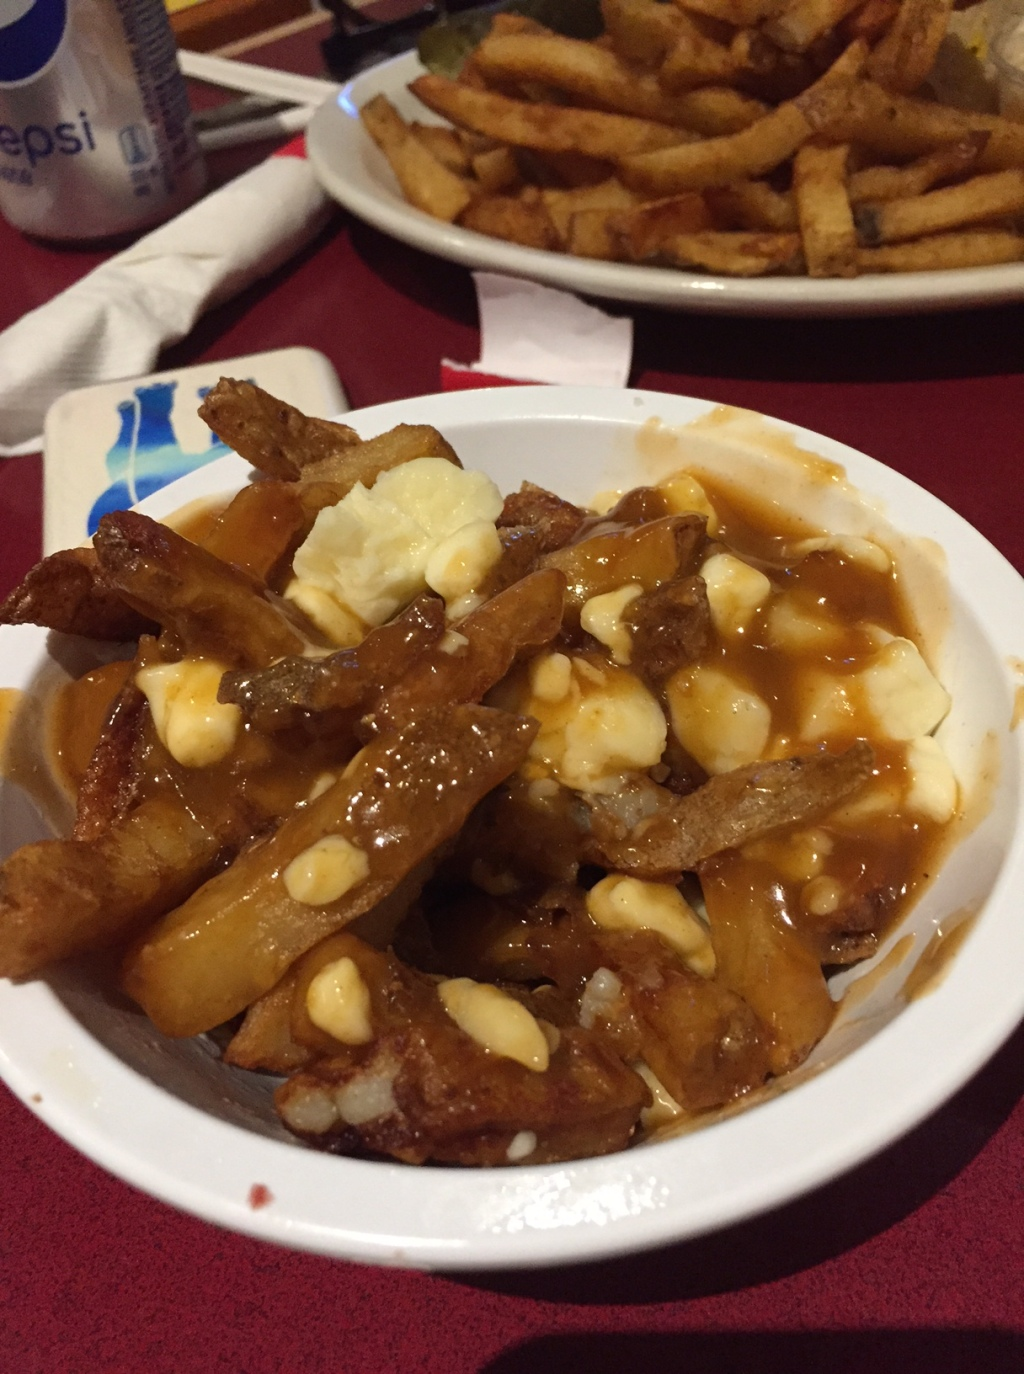 A little plate of Canadian heaven.